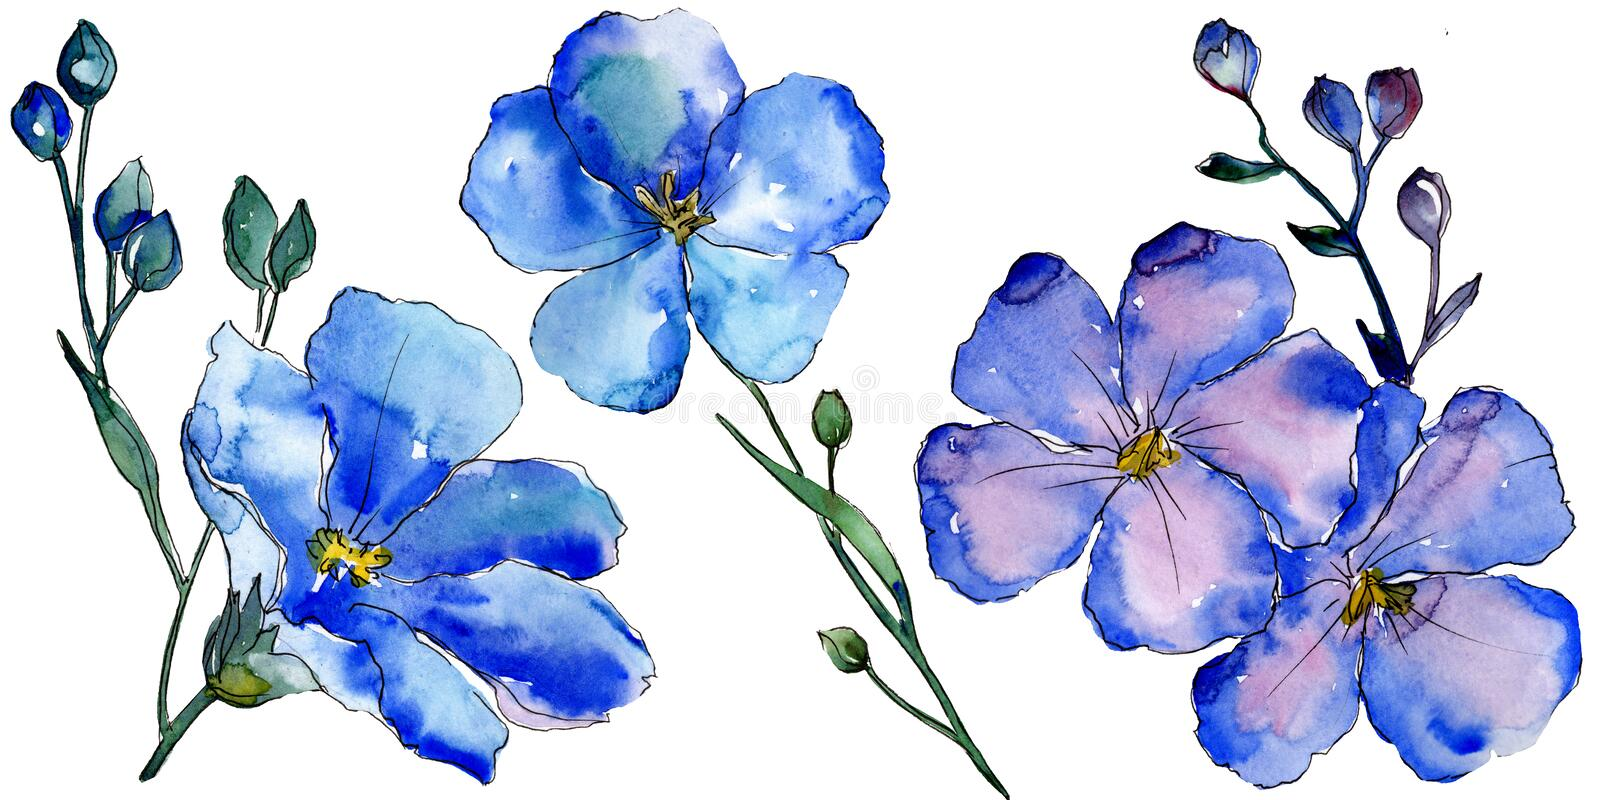 Watercolor blue flax flowers. Floral botanical flower. Isolated illustration element. vector illustration